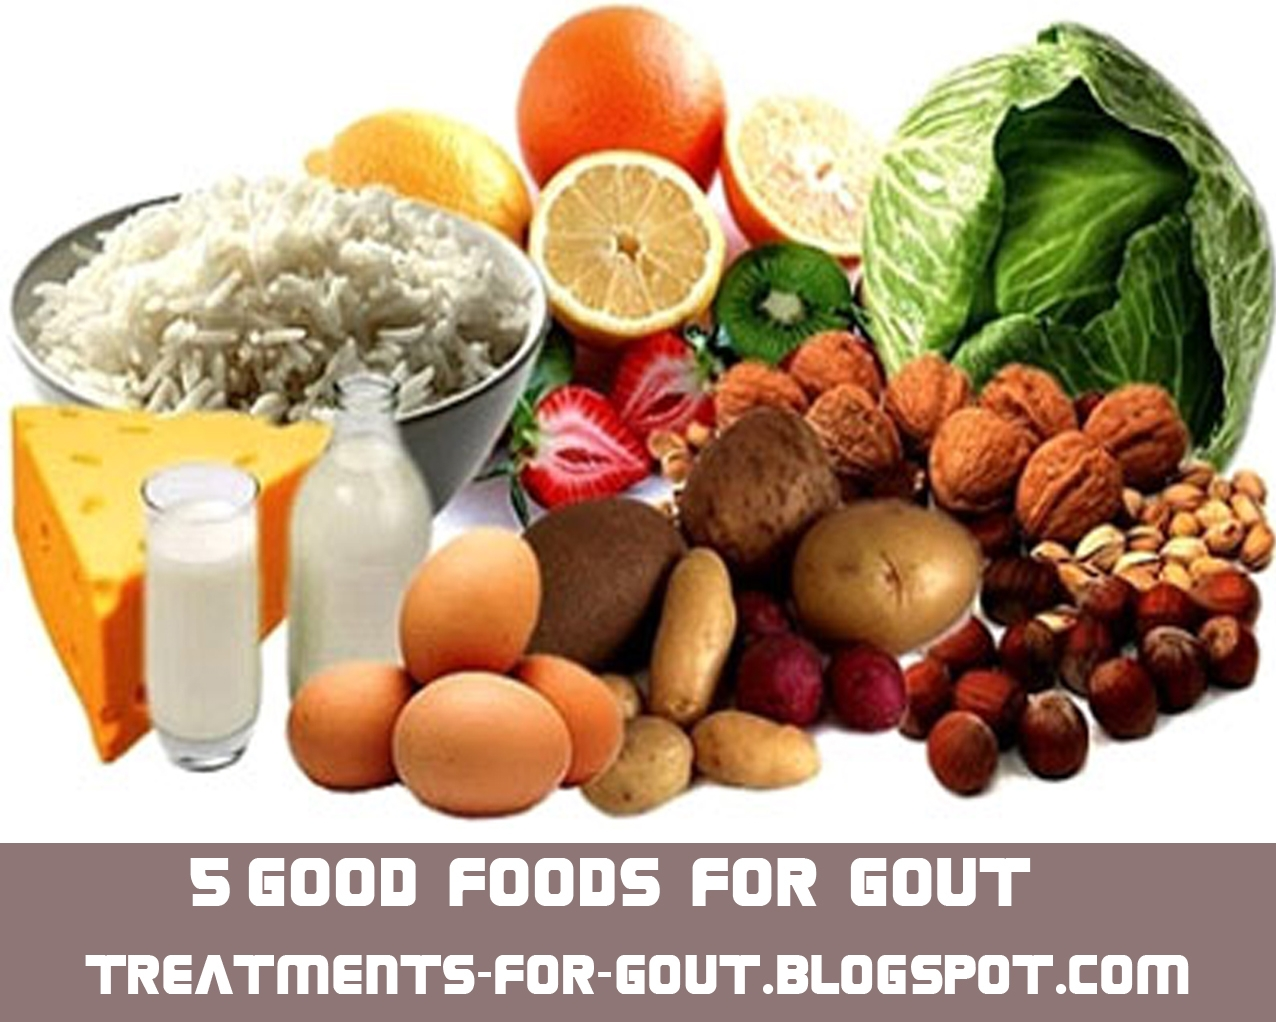 Diet For Gout Foods To Avoid | All Articles about Ketogenic Diet